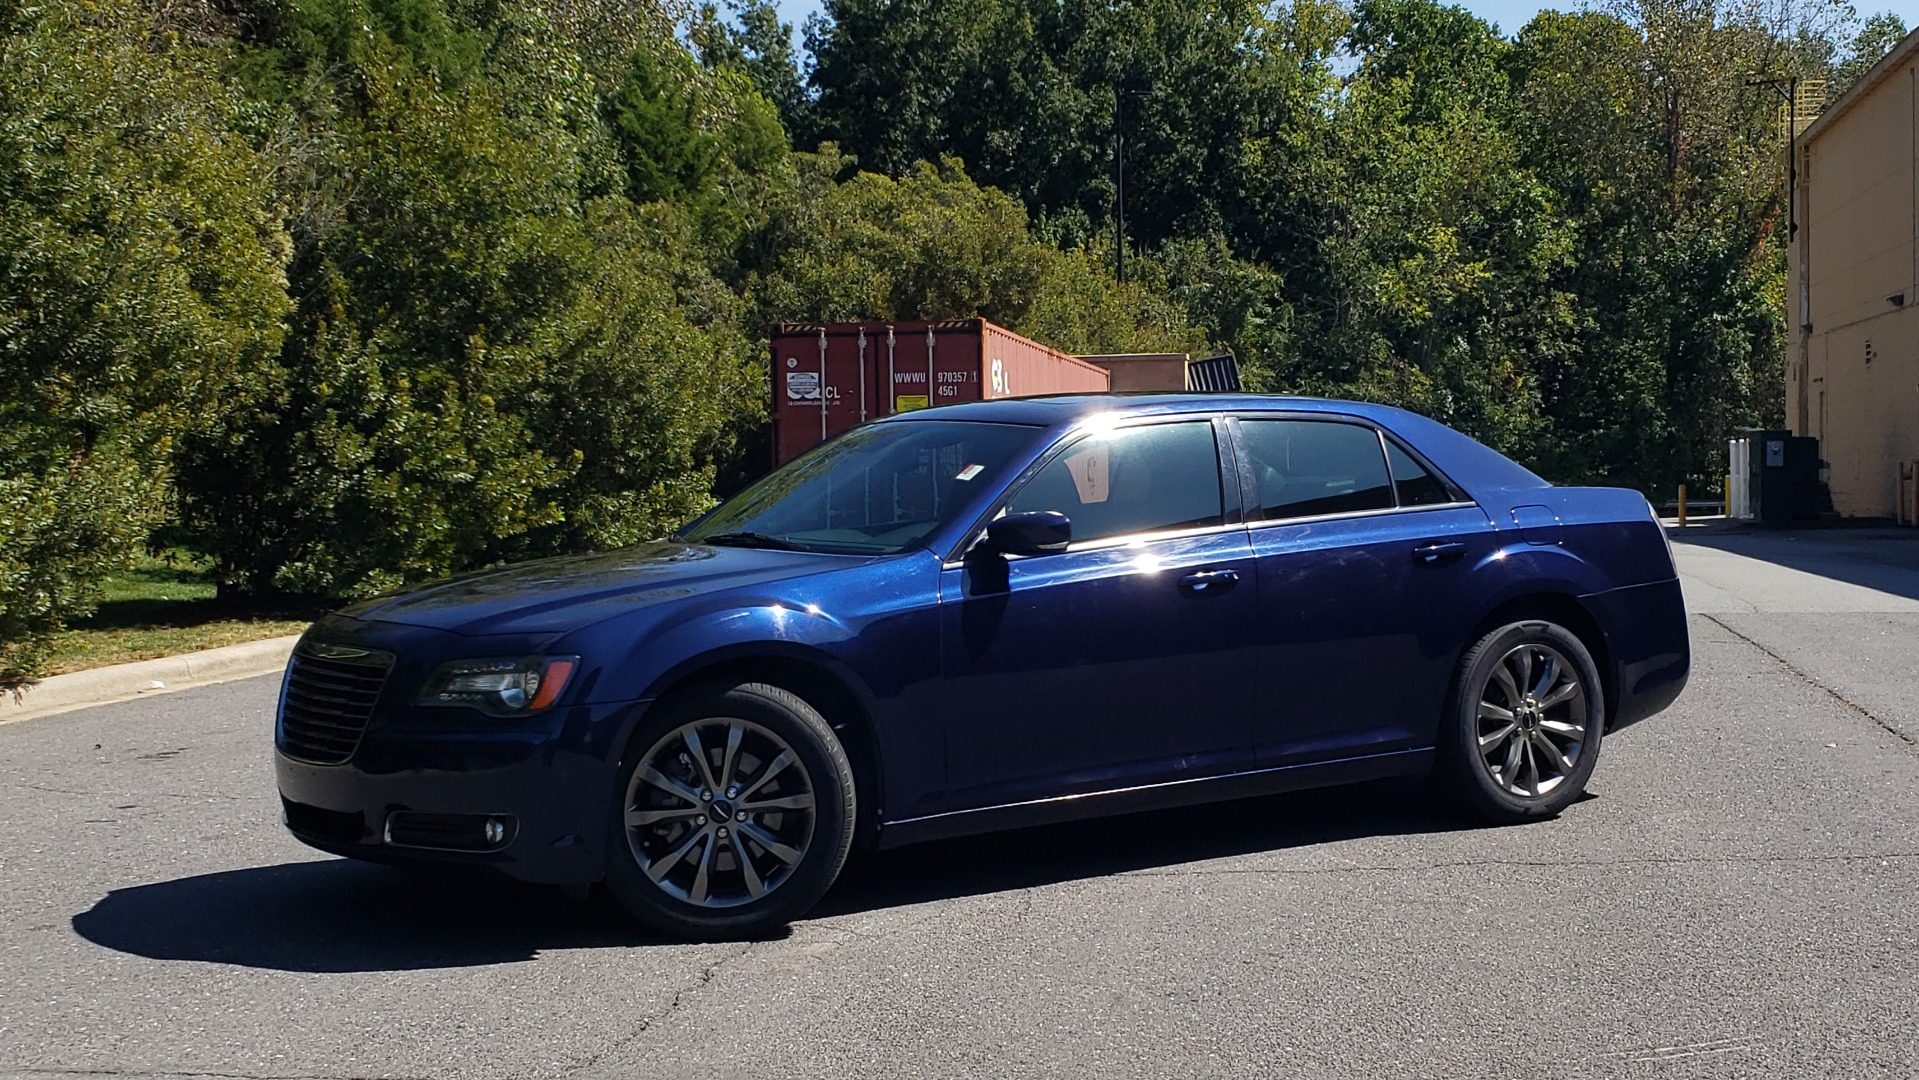 Used 2014 Chrysler 300 S AWD / SAFETY TEC / BLIND SPOT / LIGHT GRP / LUXURY GRP for sale $13,995 at Formula Imports in Charlotte NC 28227 2